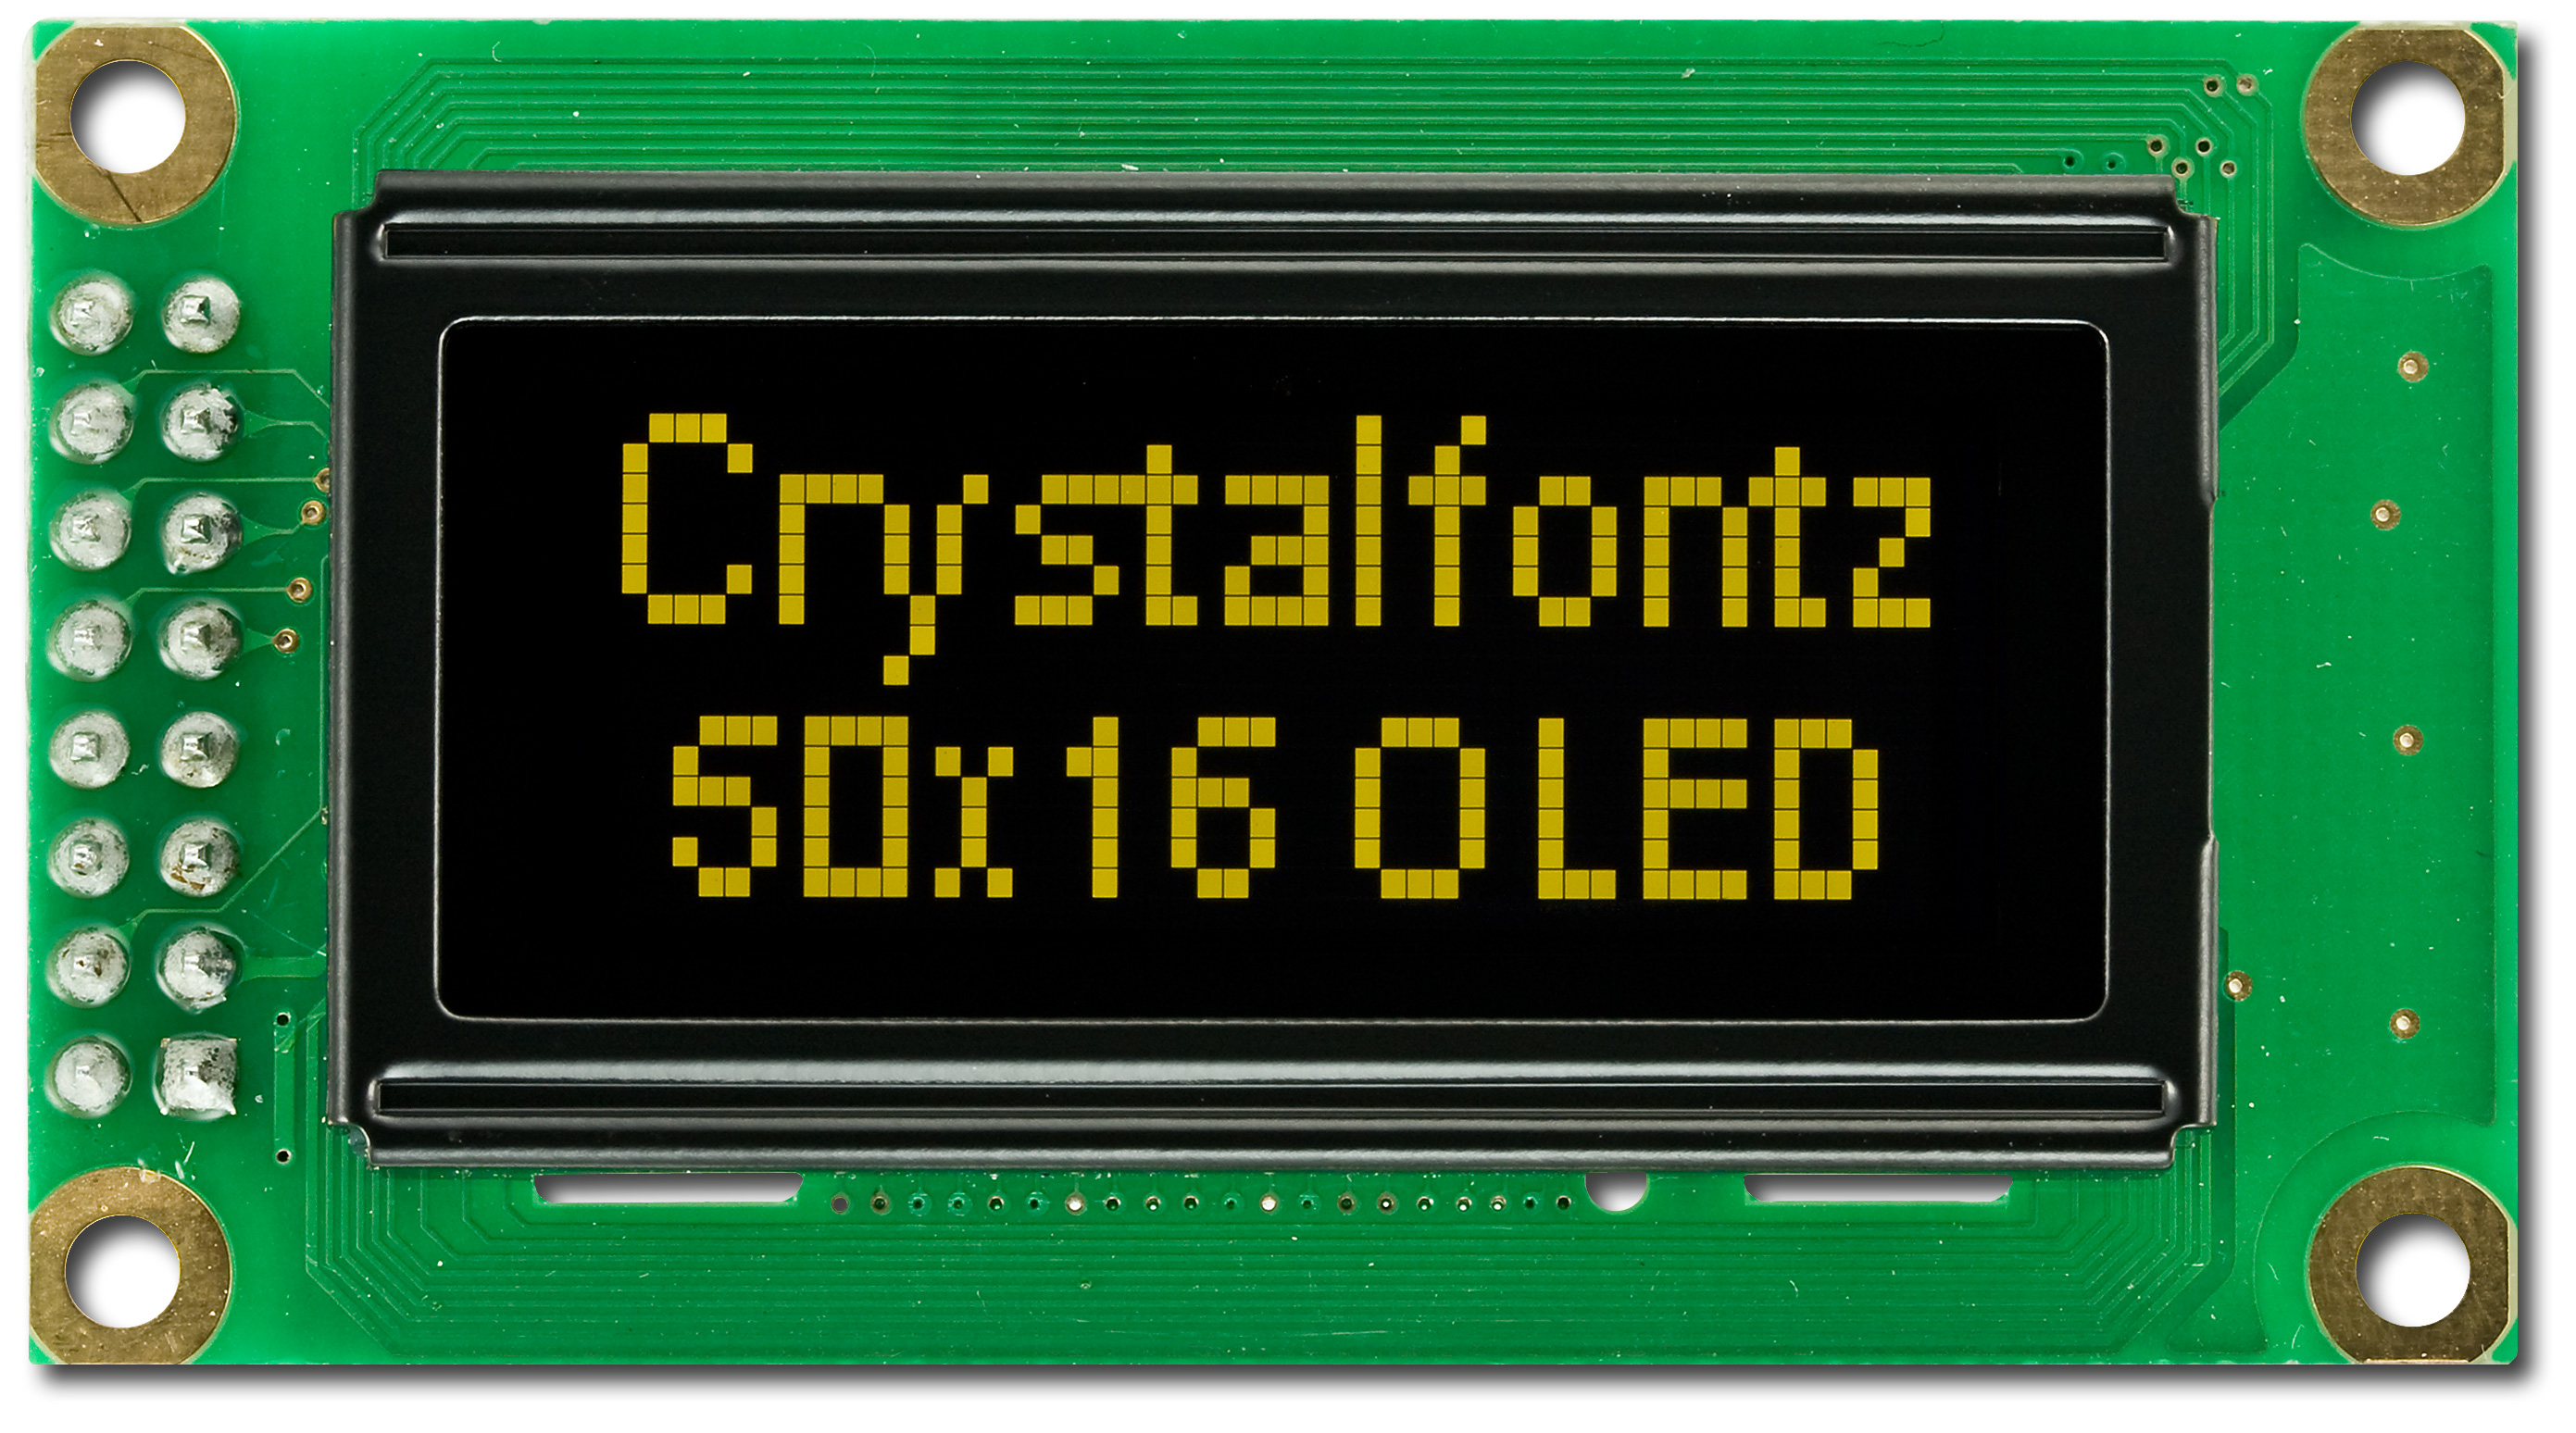 50x16 Graphic Oled Display Cfal5016ay From Crystalfontz Lcd Module In 4 Bit Mode Cfal5016a Y